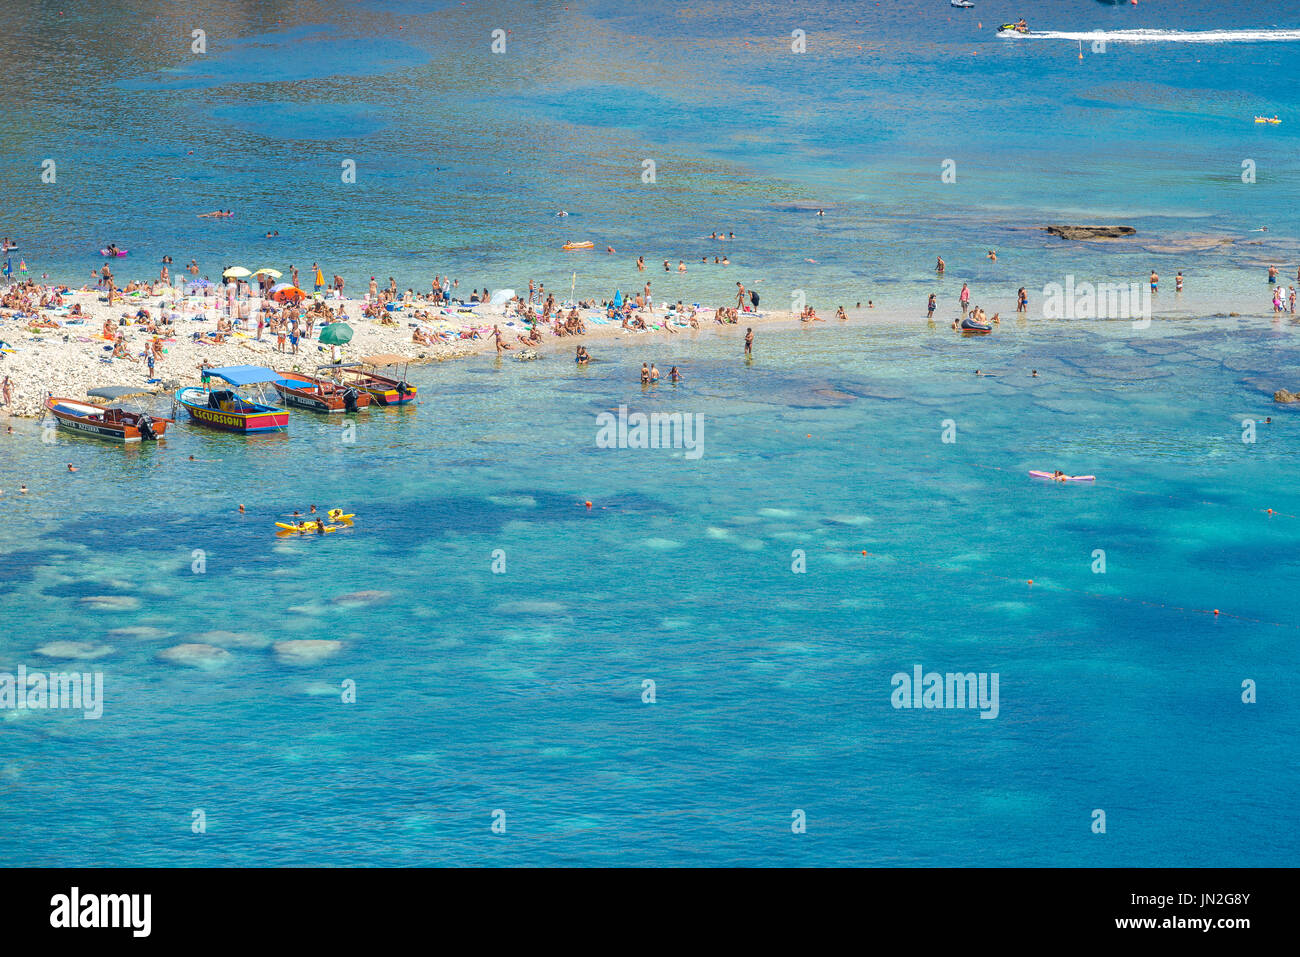 Mazzaro beach Sicily, close to Taormina the beach at Mazzaro is a popular location in summer for those keen to sunbathe - Stock Image